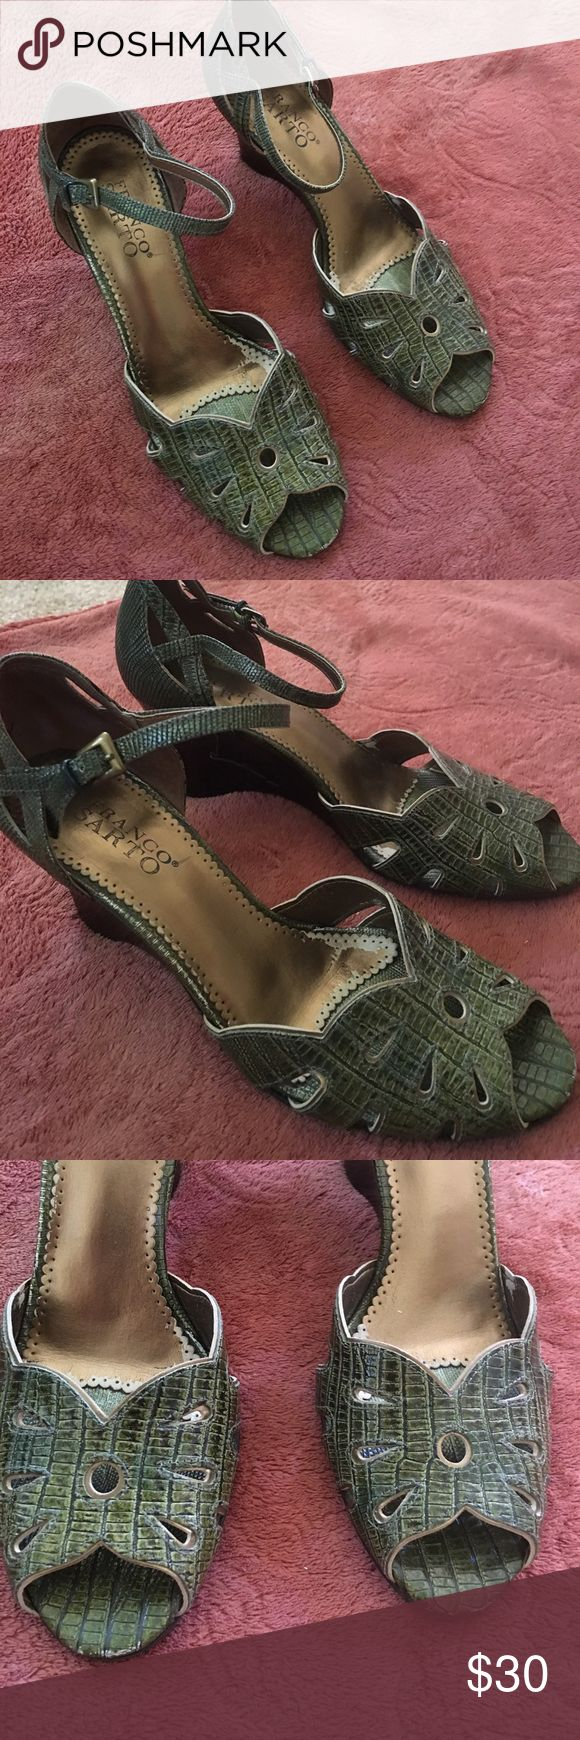 Franco sarto olive green and gold wedge shoes Super adorable and comfy wedge shoes size 7.5 genuine leather with gold detailing and cute cut outs. Alligator detailing. Seriously adorable and in great used condition. No signs of wear on heels or bottom of soles Franco Sarto Shoes Wedges